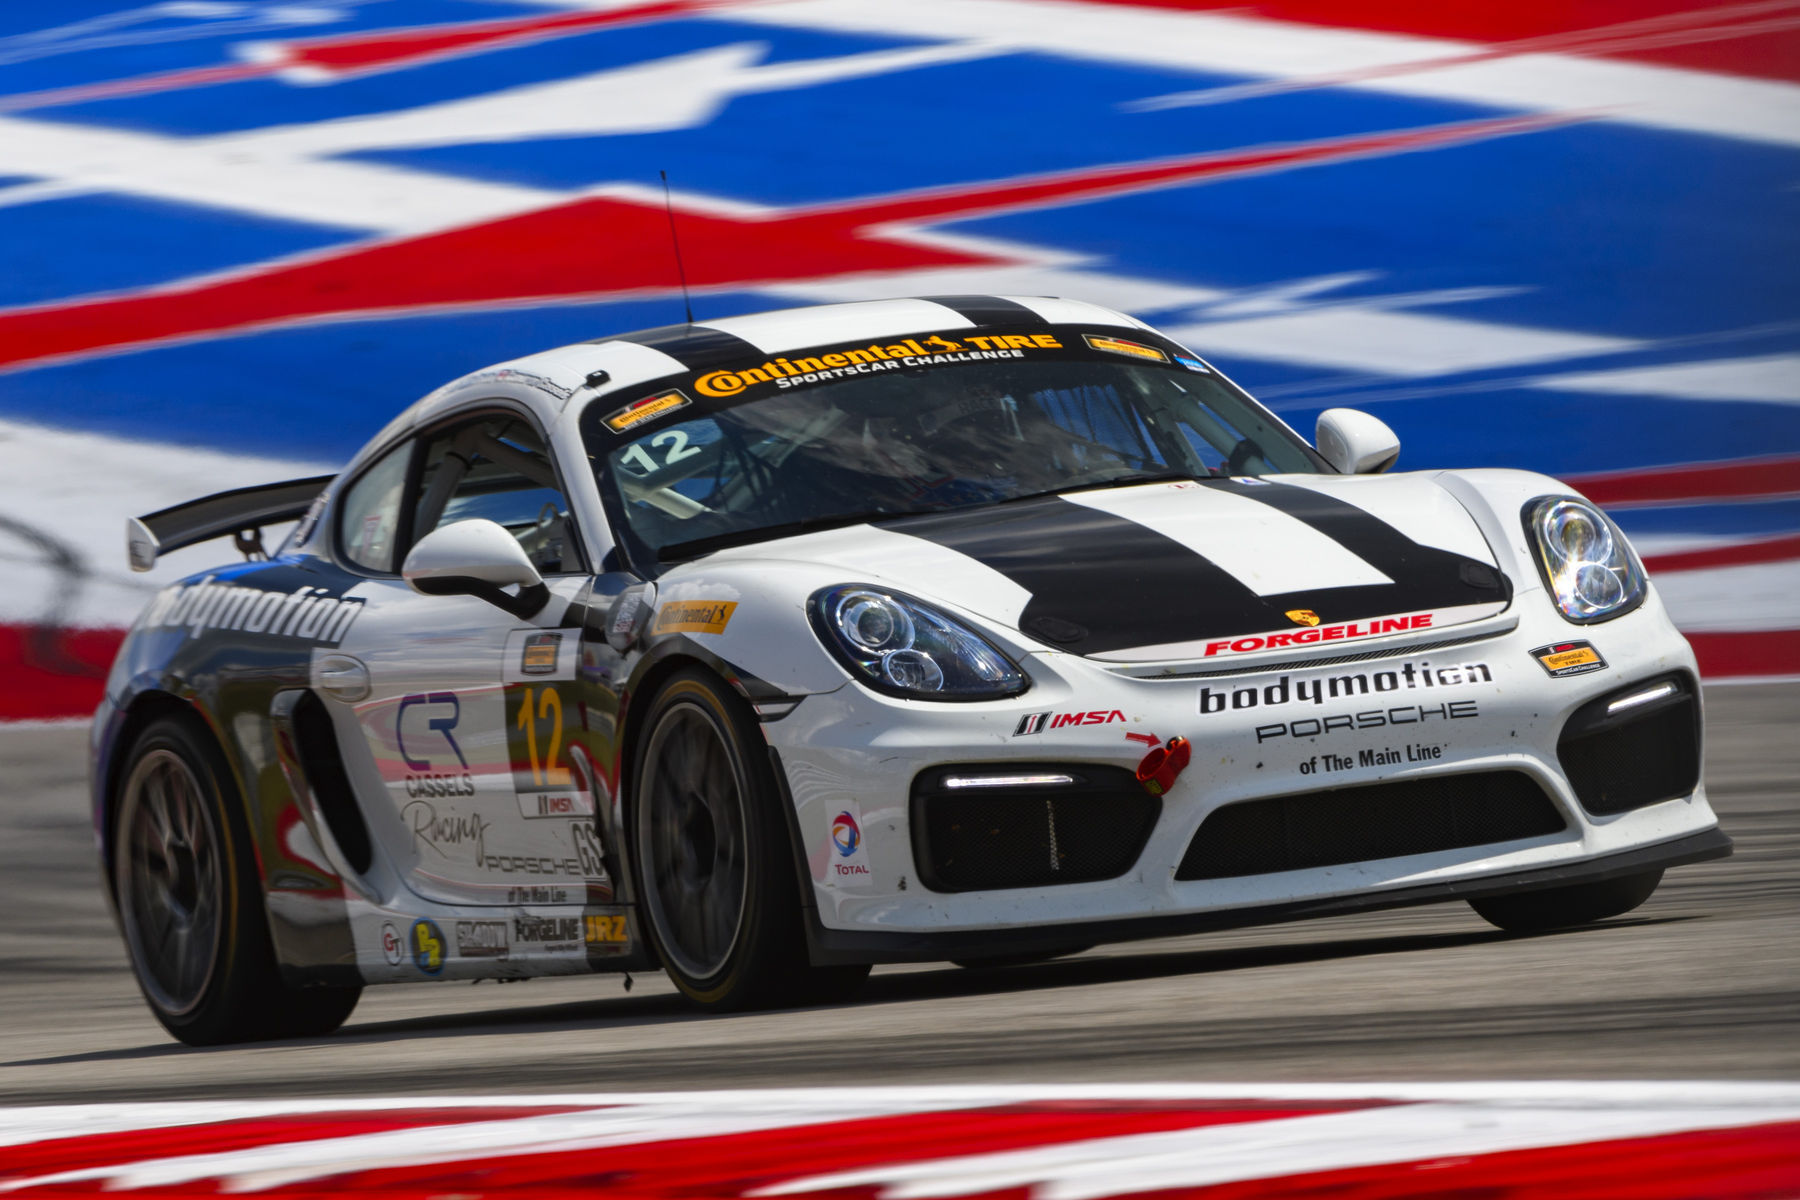 2016 Porsche Cayman | Forgeline Teams on the IMSA CTSC Podium at Circuit of the Americas